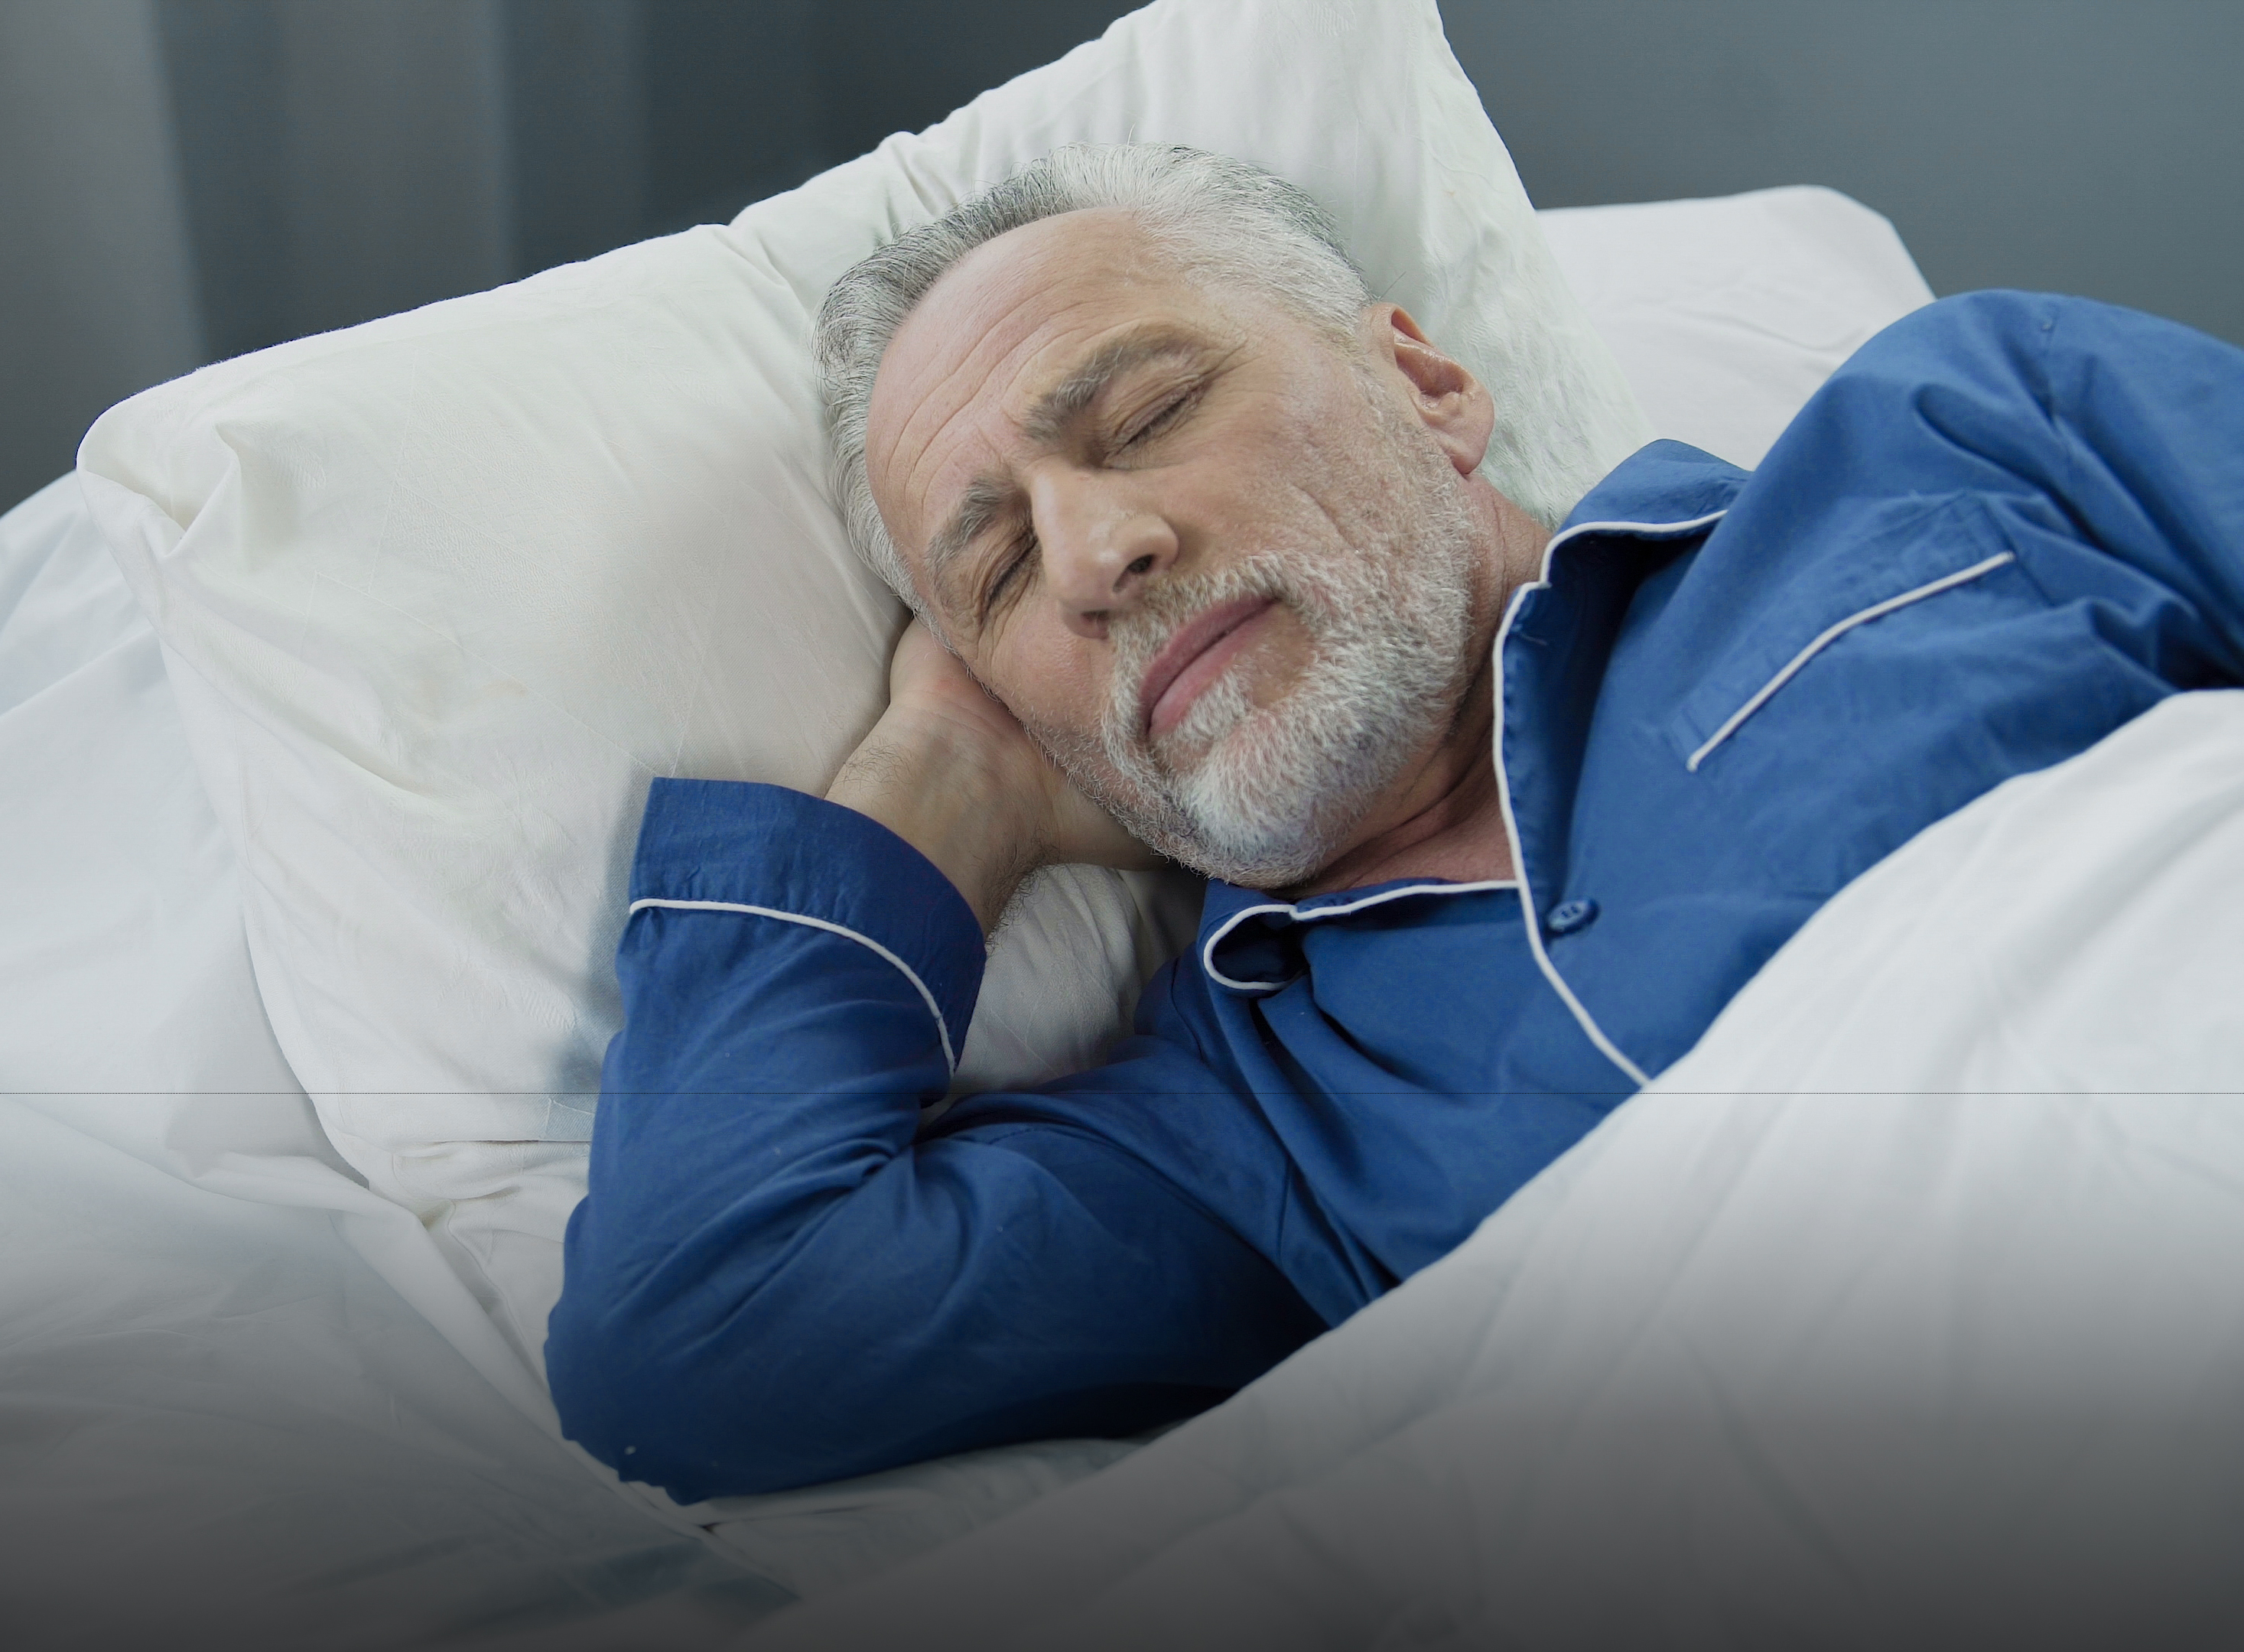 8 Reasons Why Sleep is Important for the Elderly